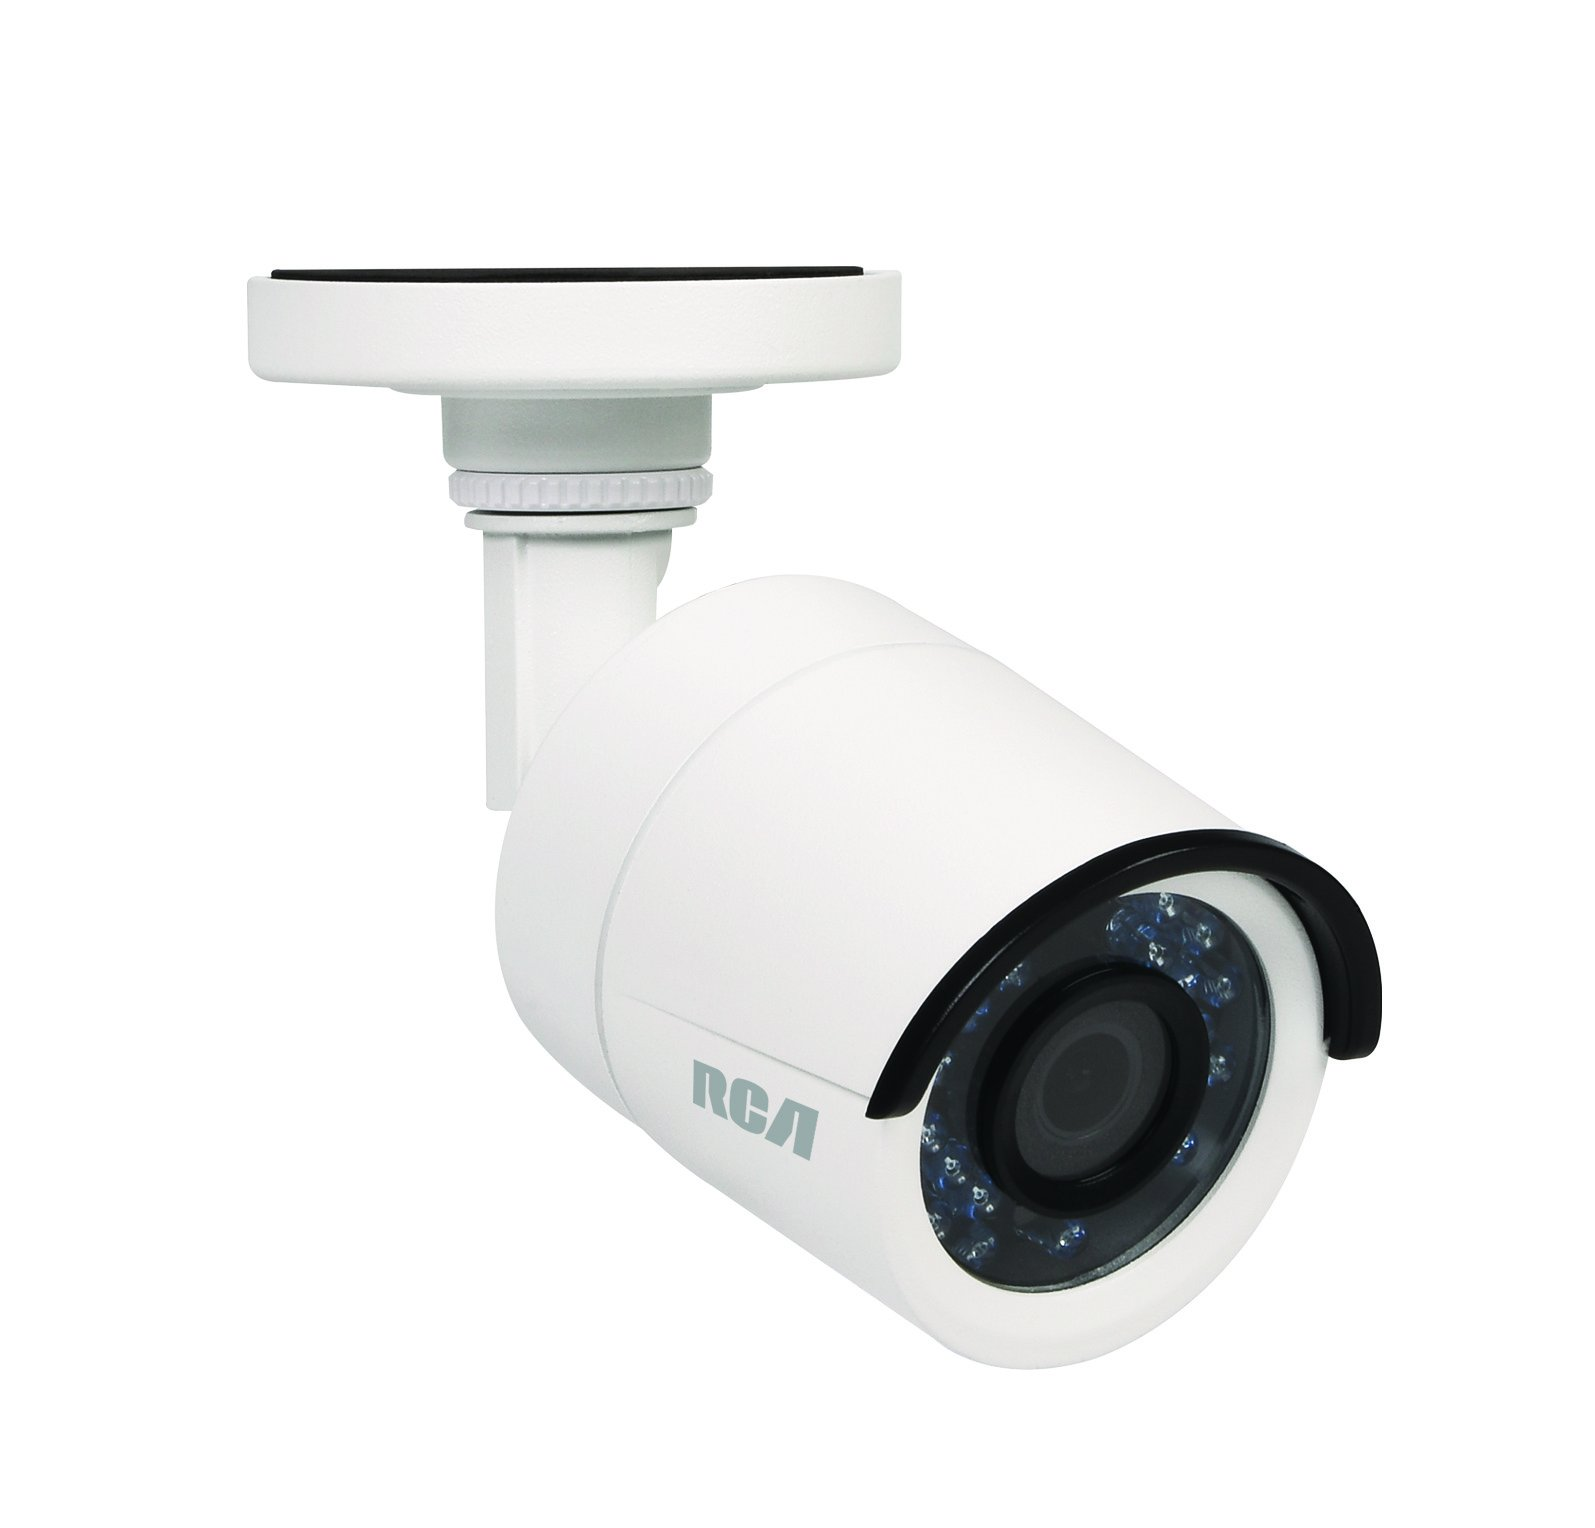 RCA HD Accessory Security Camera (Works with RCA Home Security System HSKIT482)